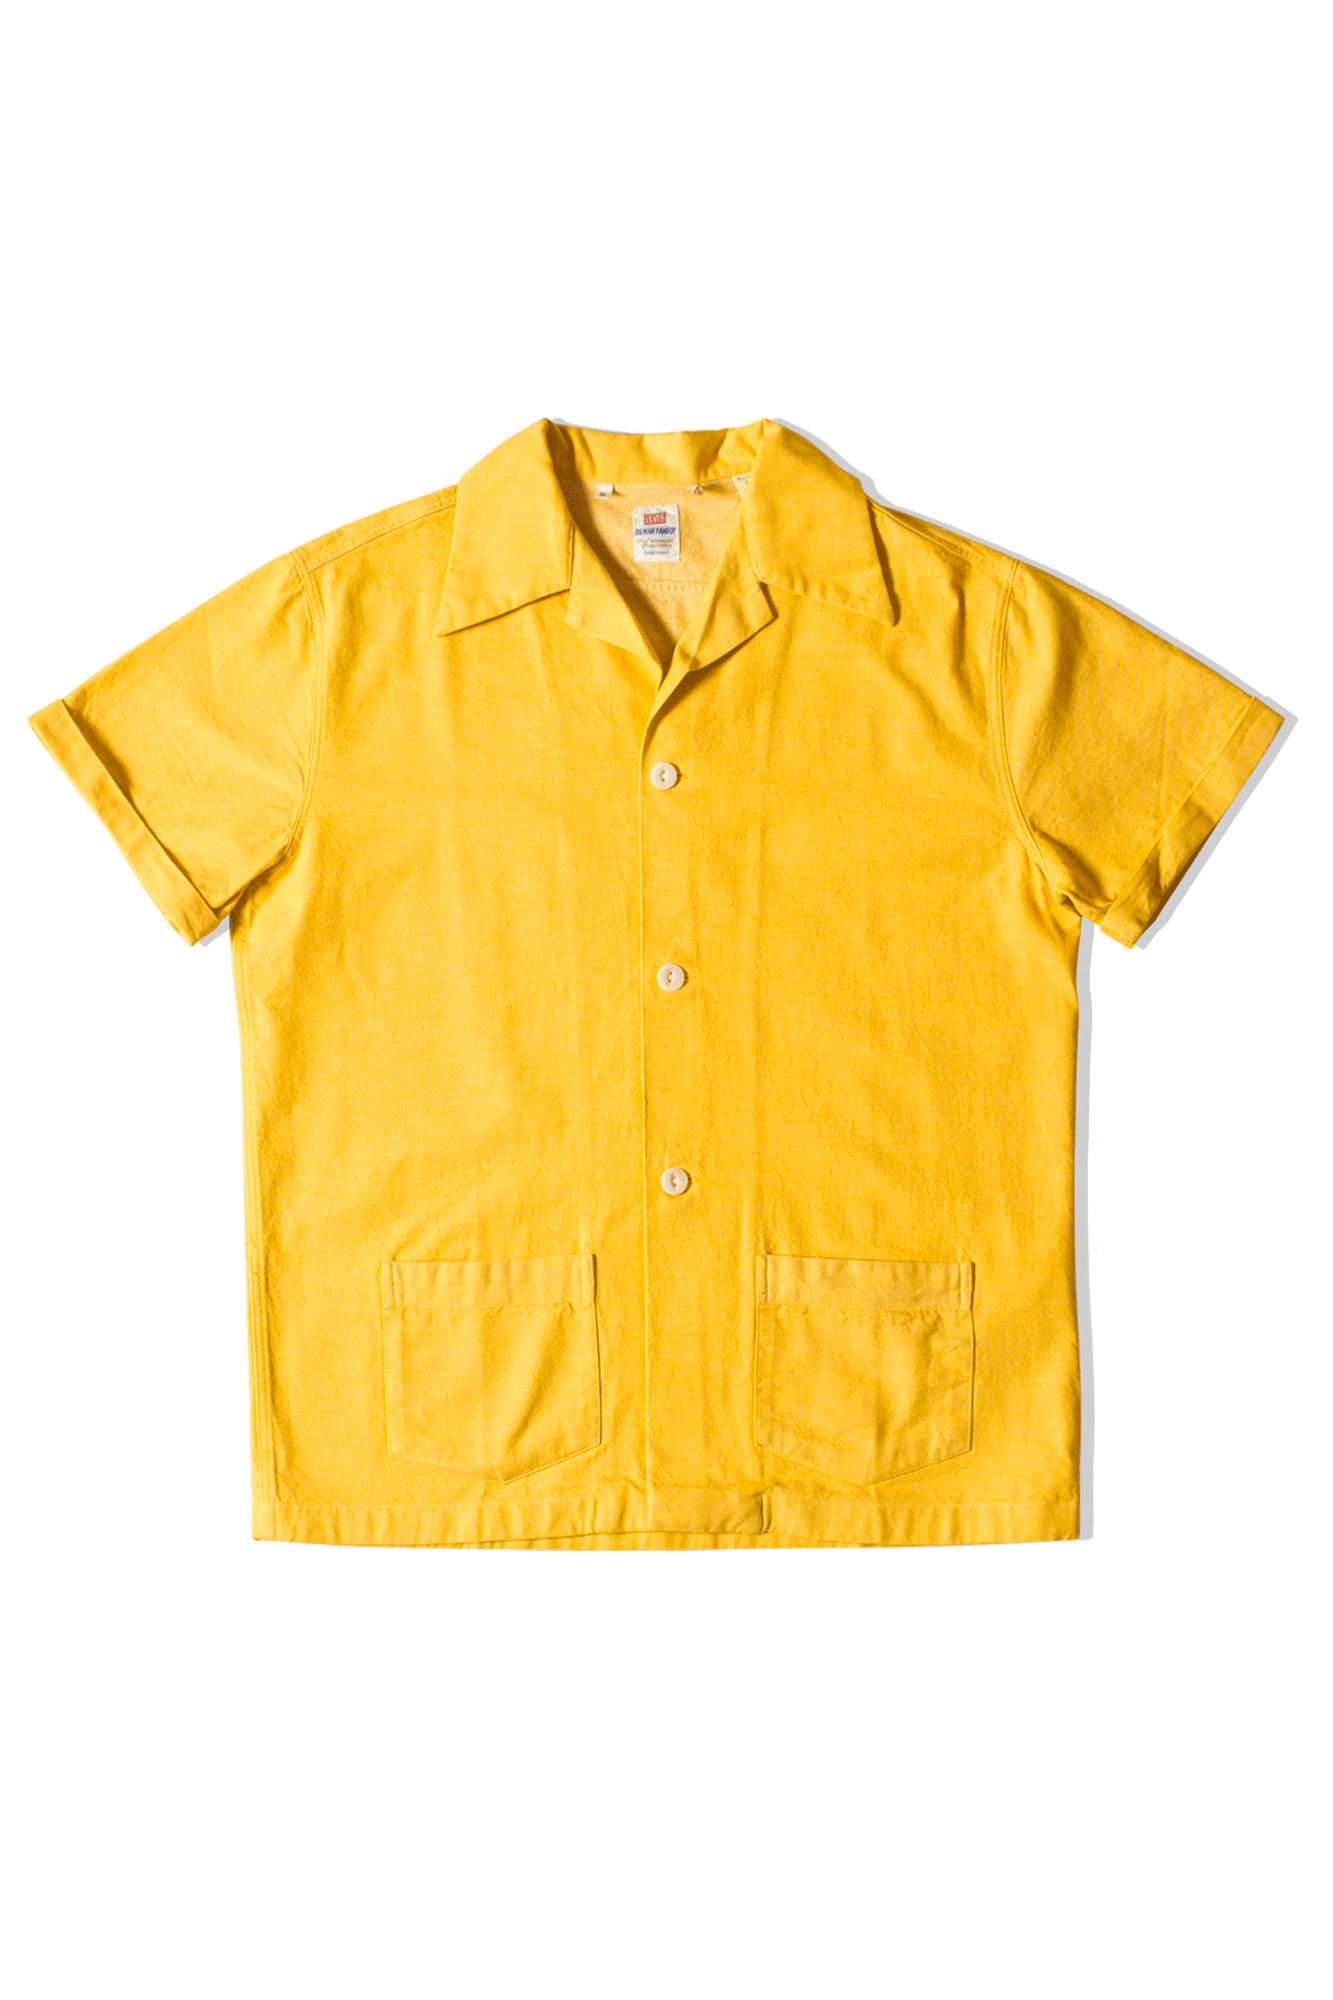 LVC Denim Family S/S Cornsilk Yellow